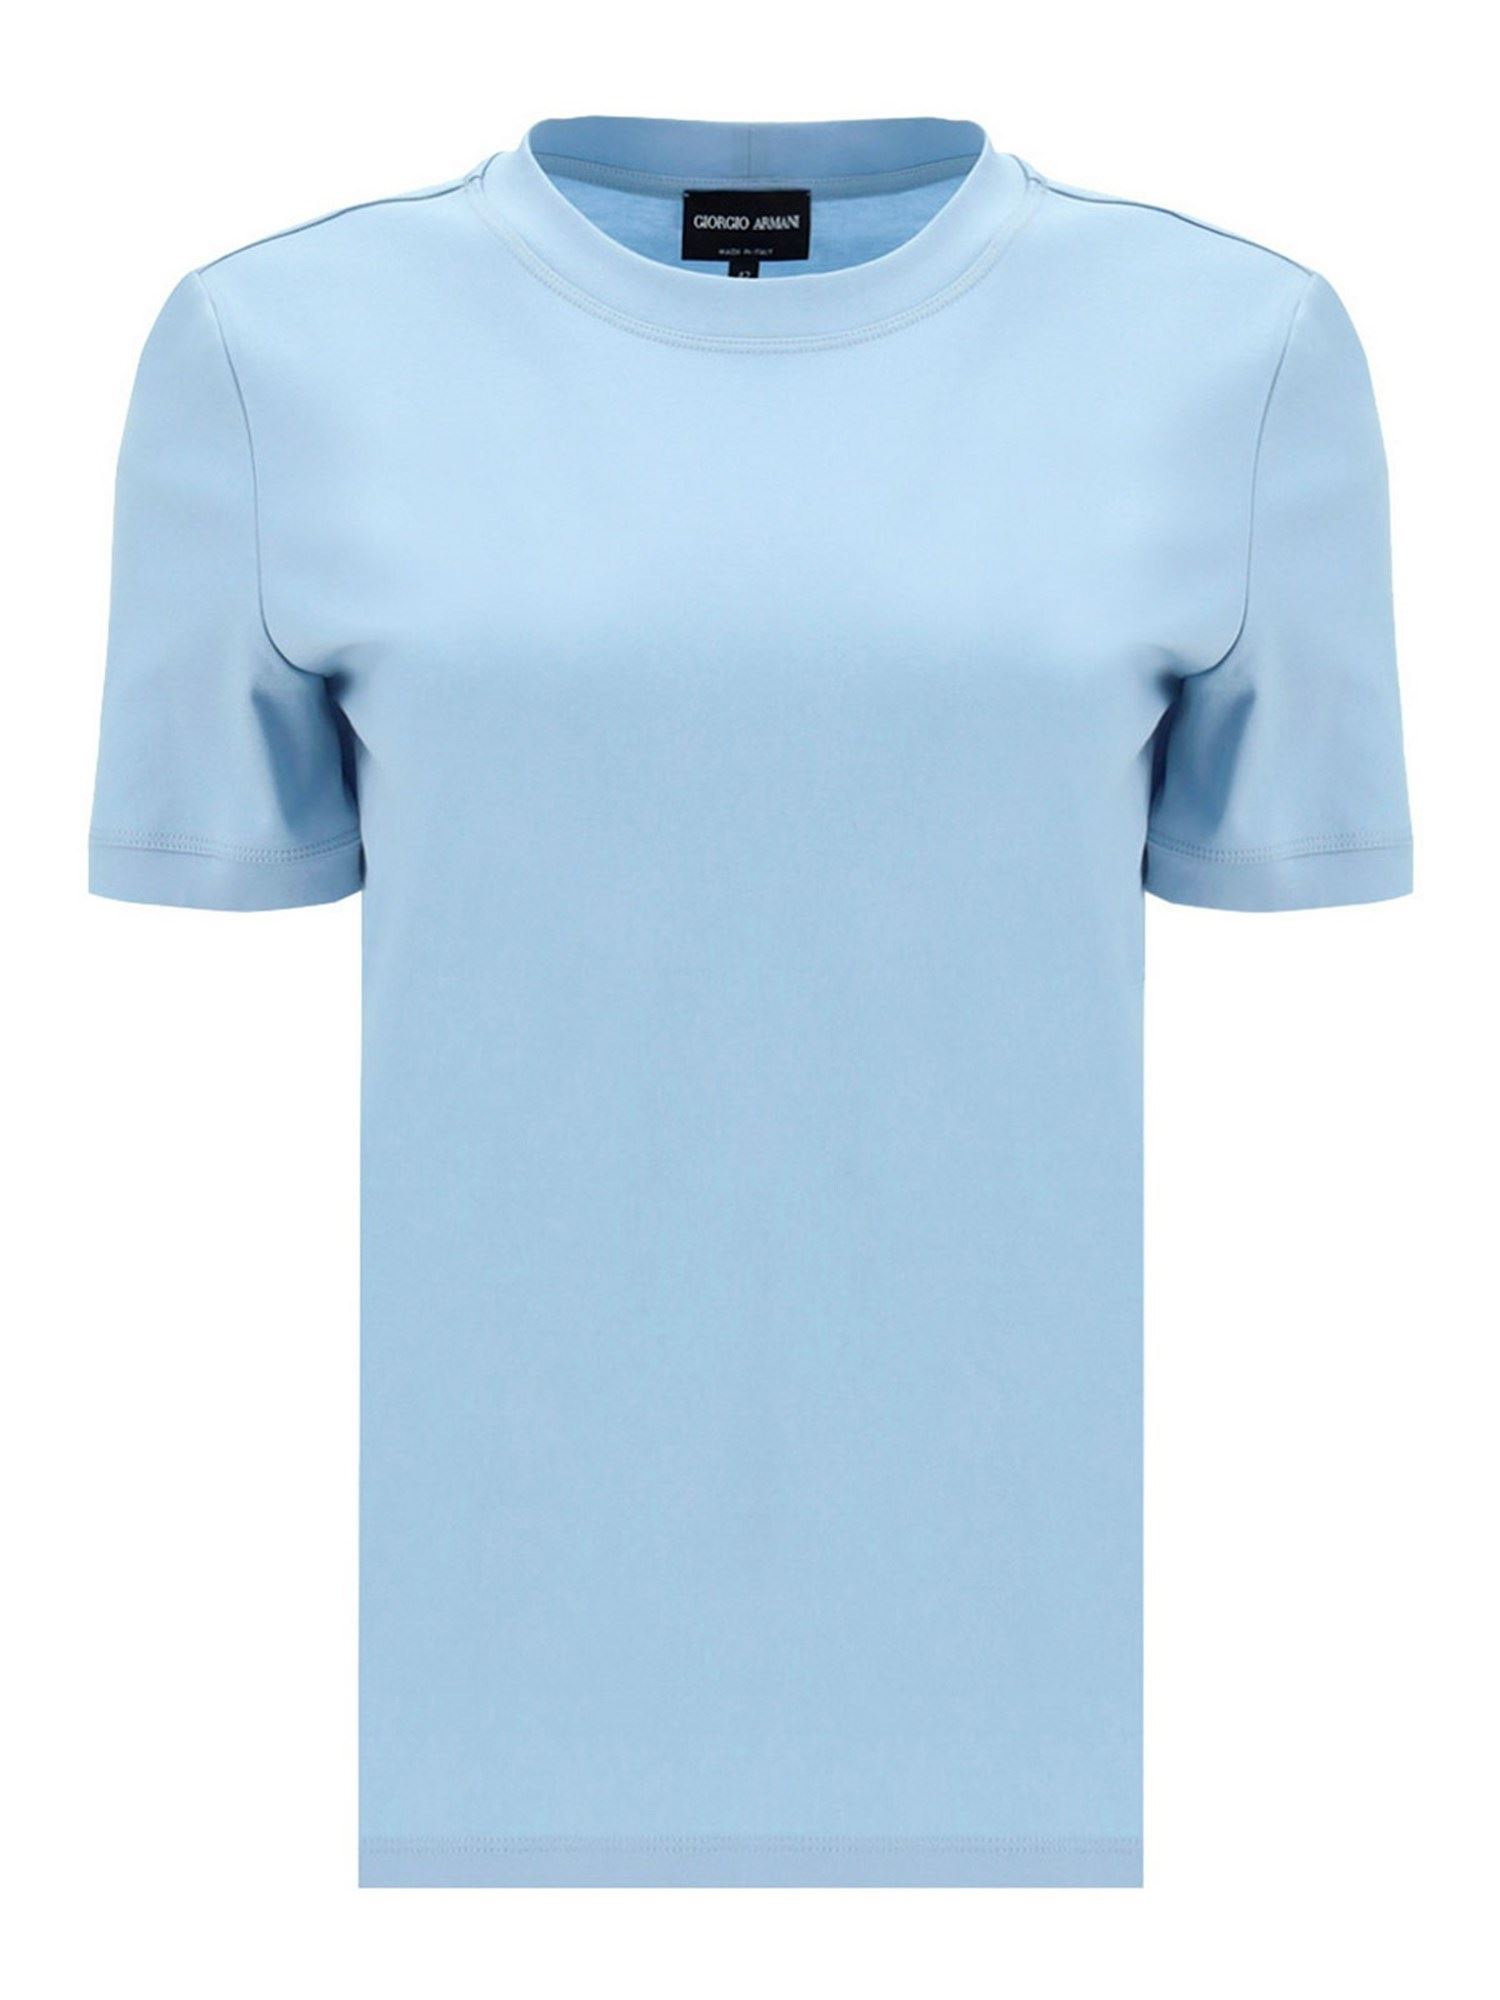 Giorgio Armani Cottons JERSEY T-SHIRT IN LIGHT BLUE